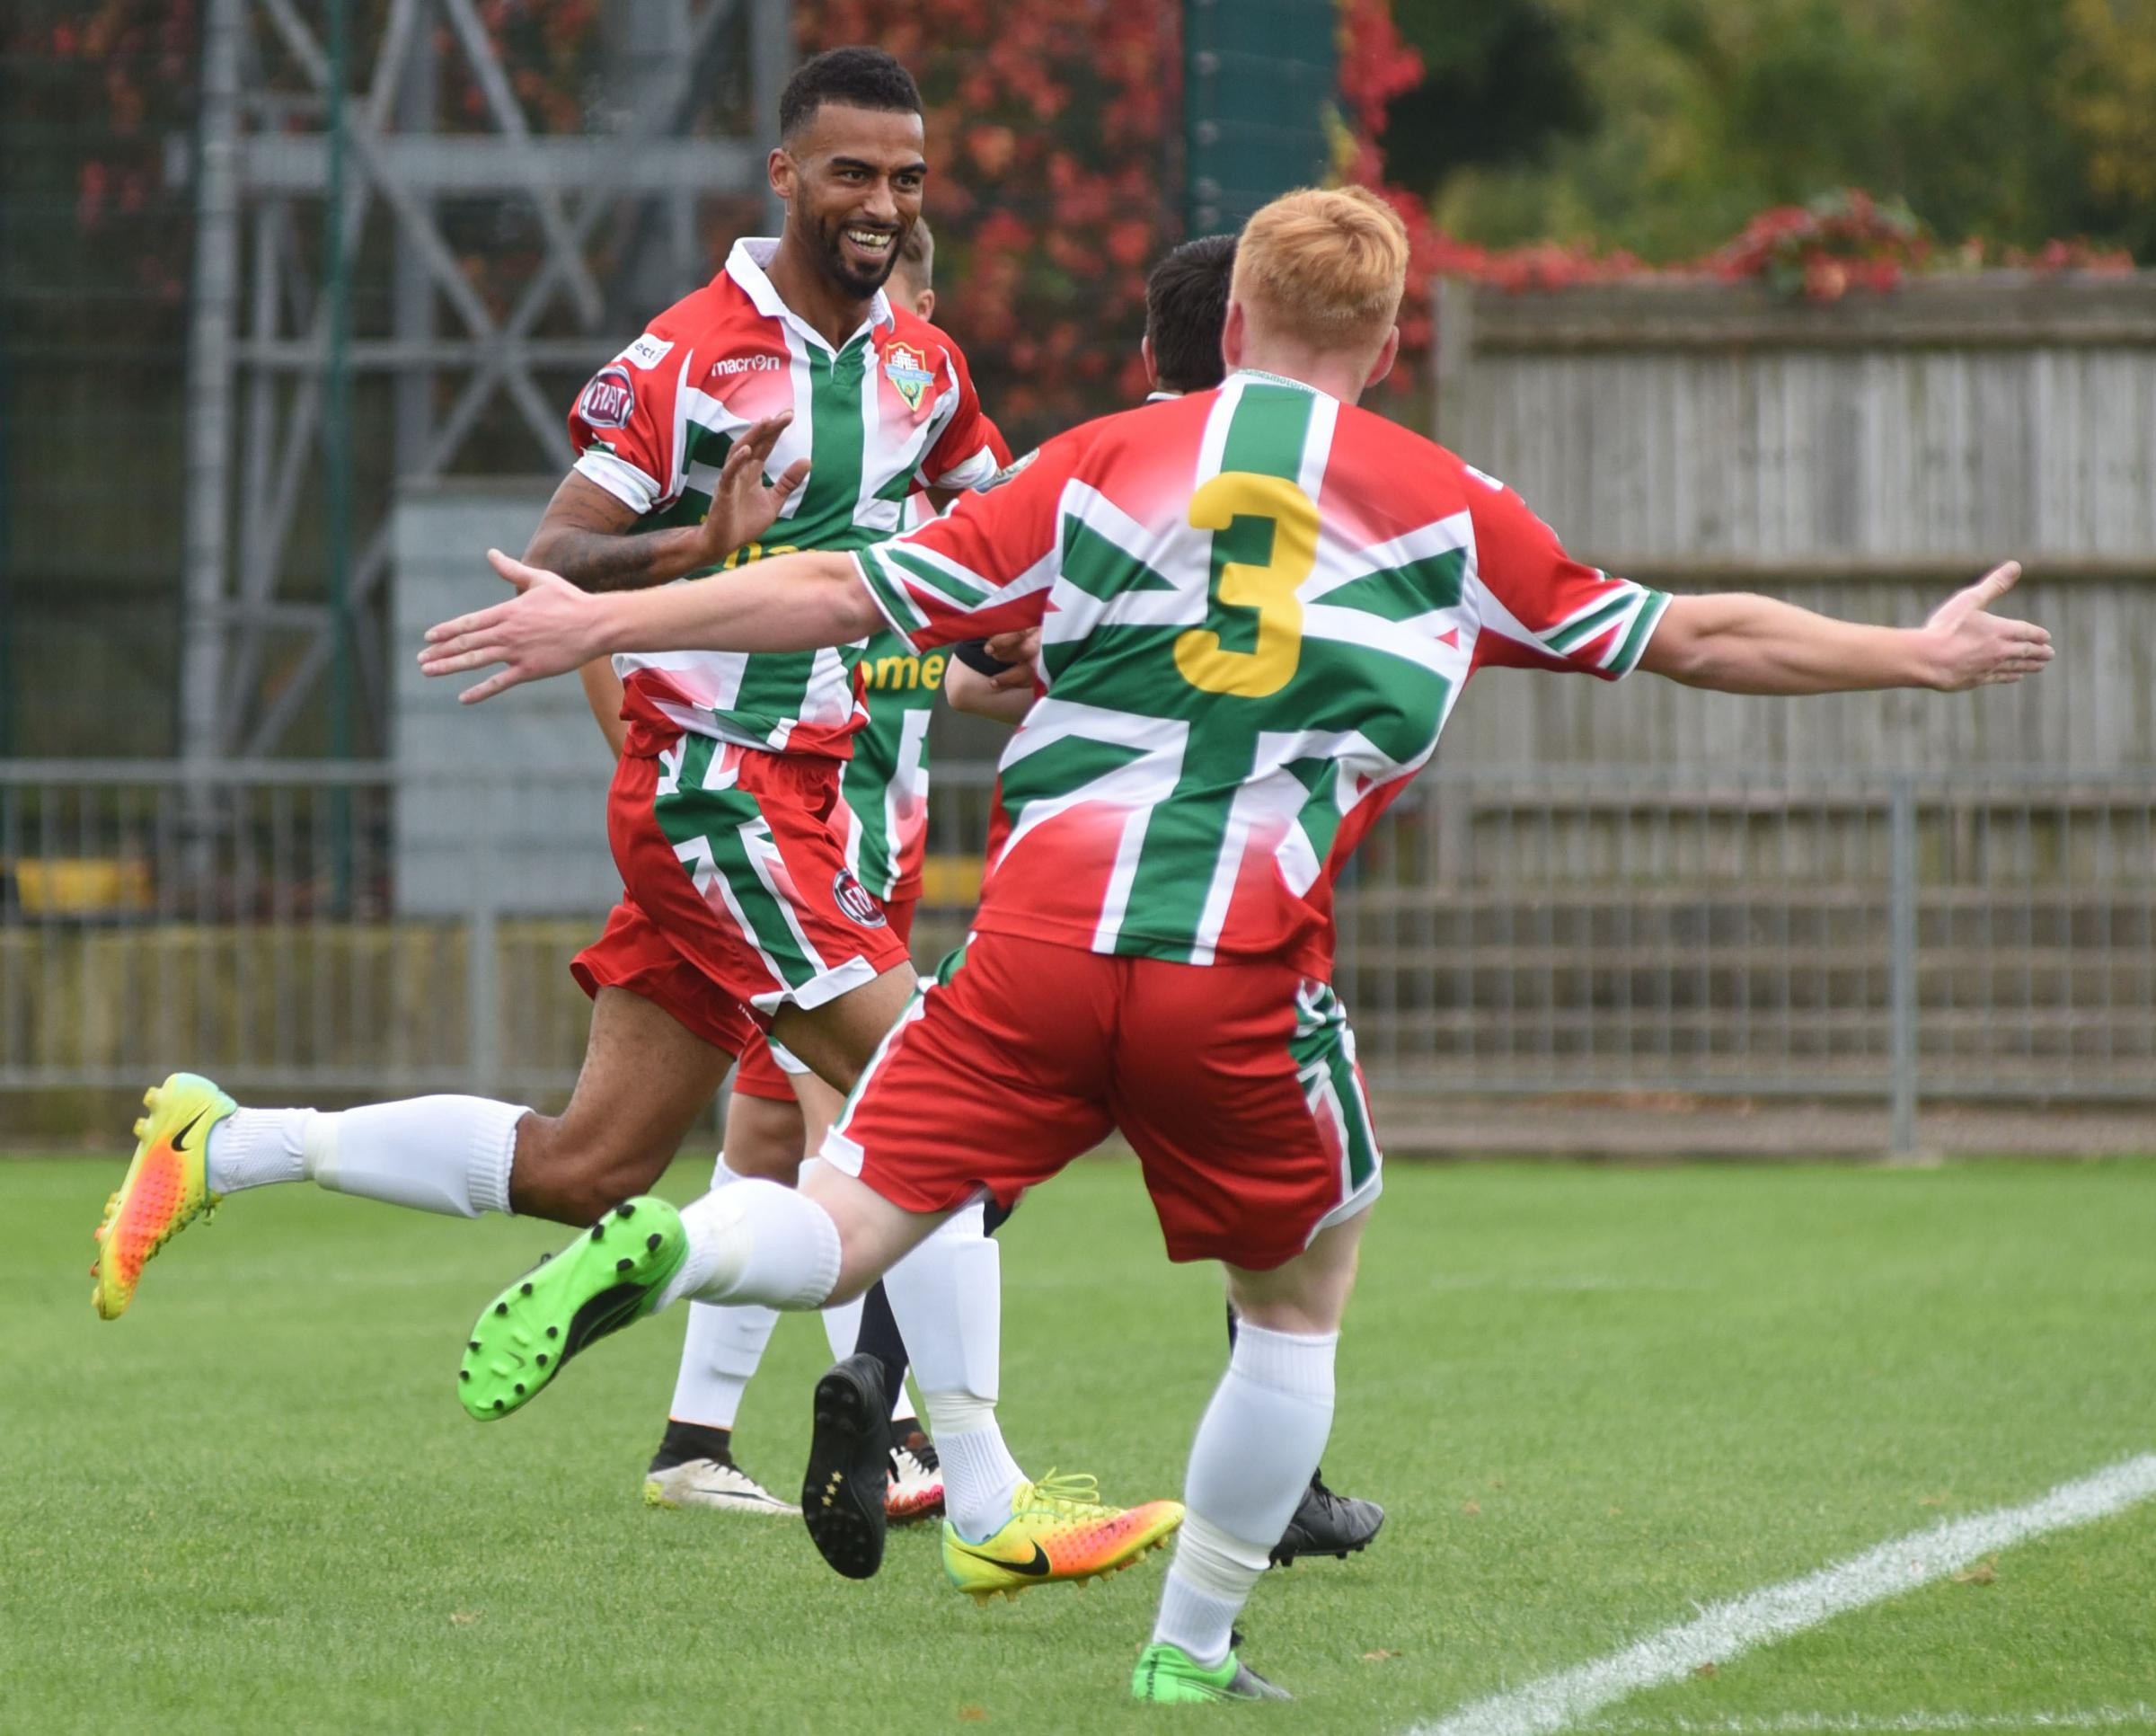 Riccardo Cannon celebrates one of his two goals as Windsor beat Highmoor Ibis 3-1 at Stag Meadow on Saturday.